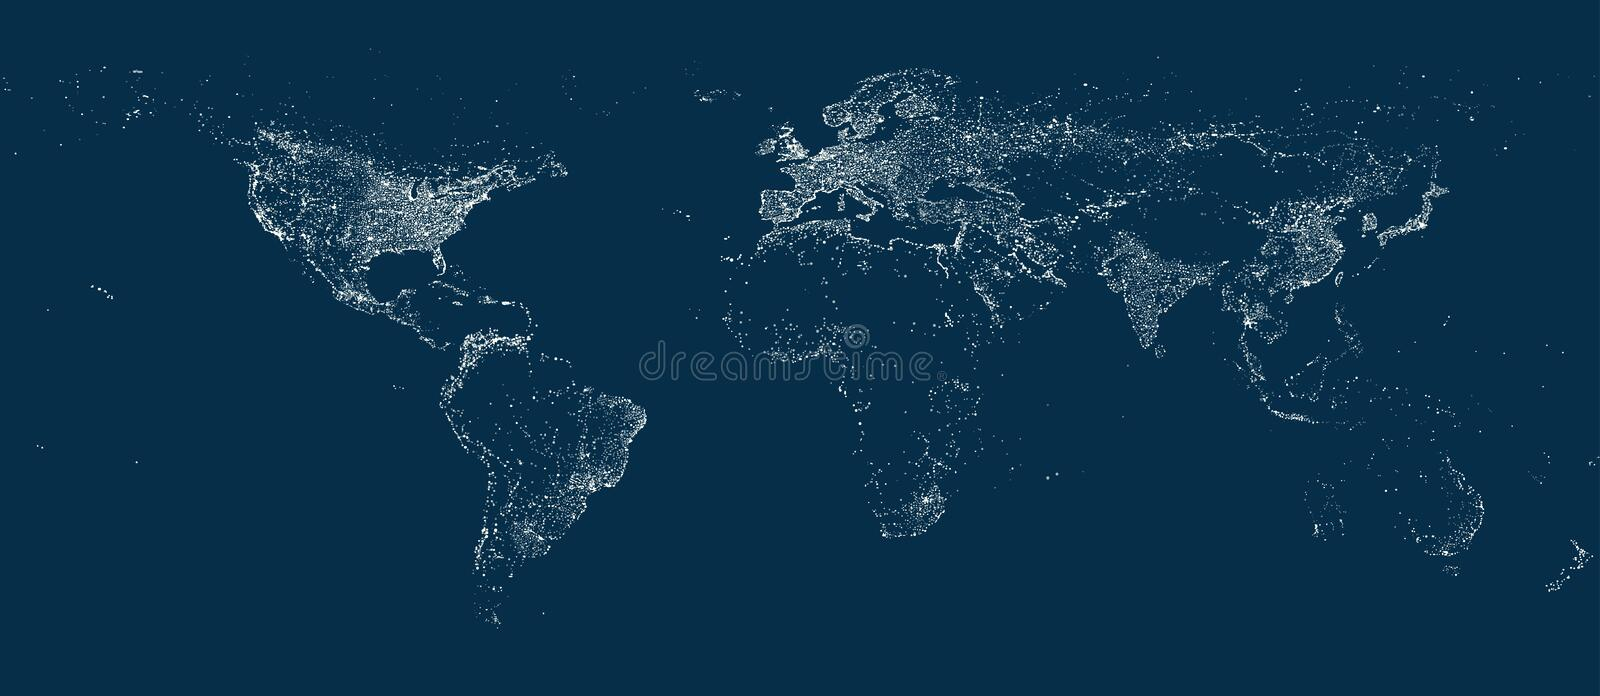 Earth' city lights map on the soft dark background vector illustration